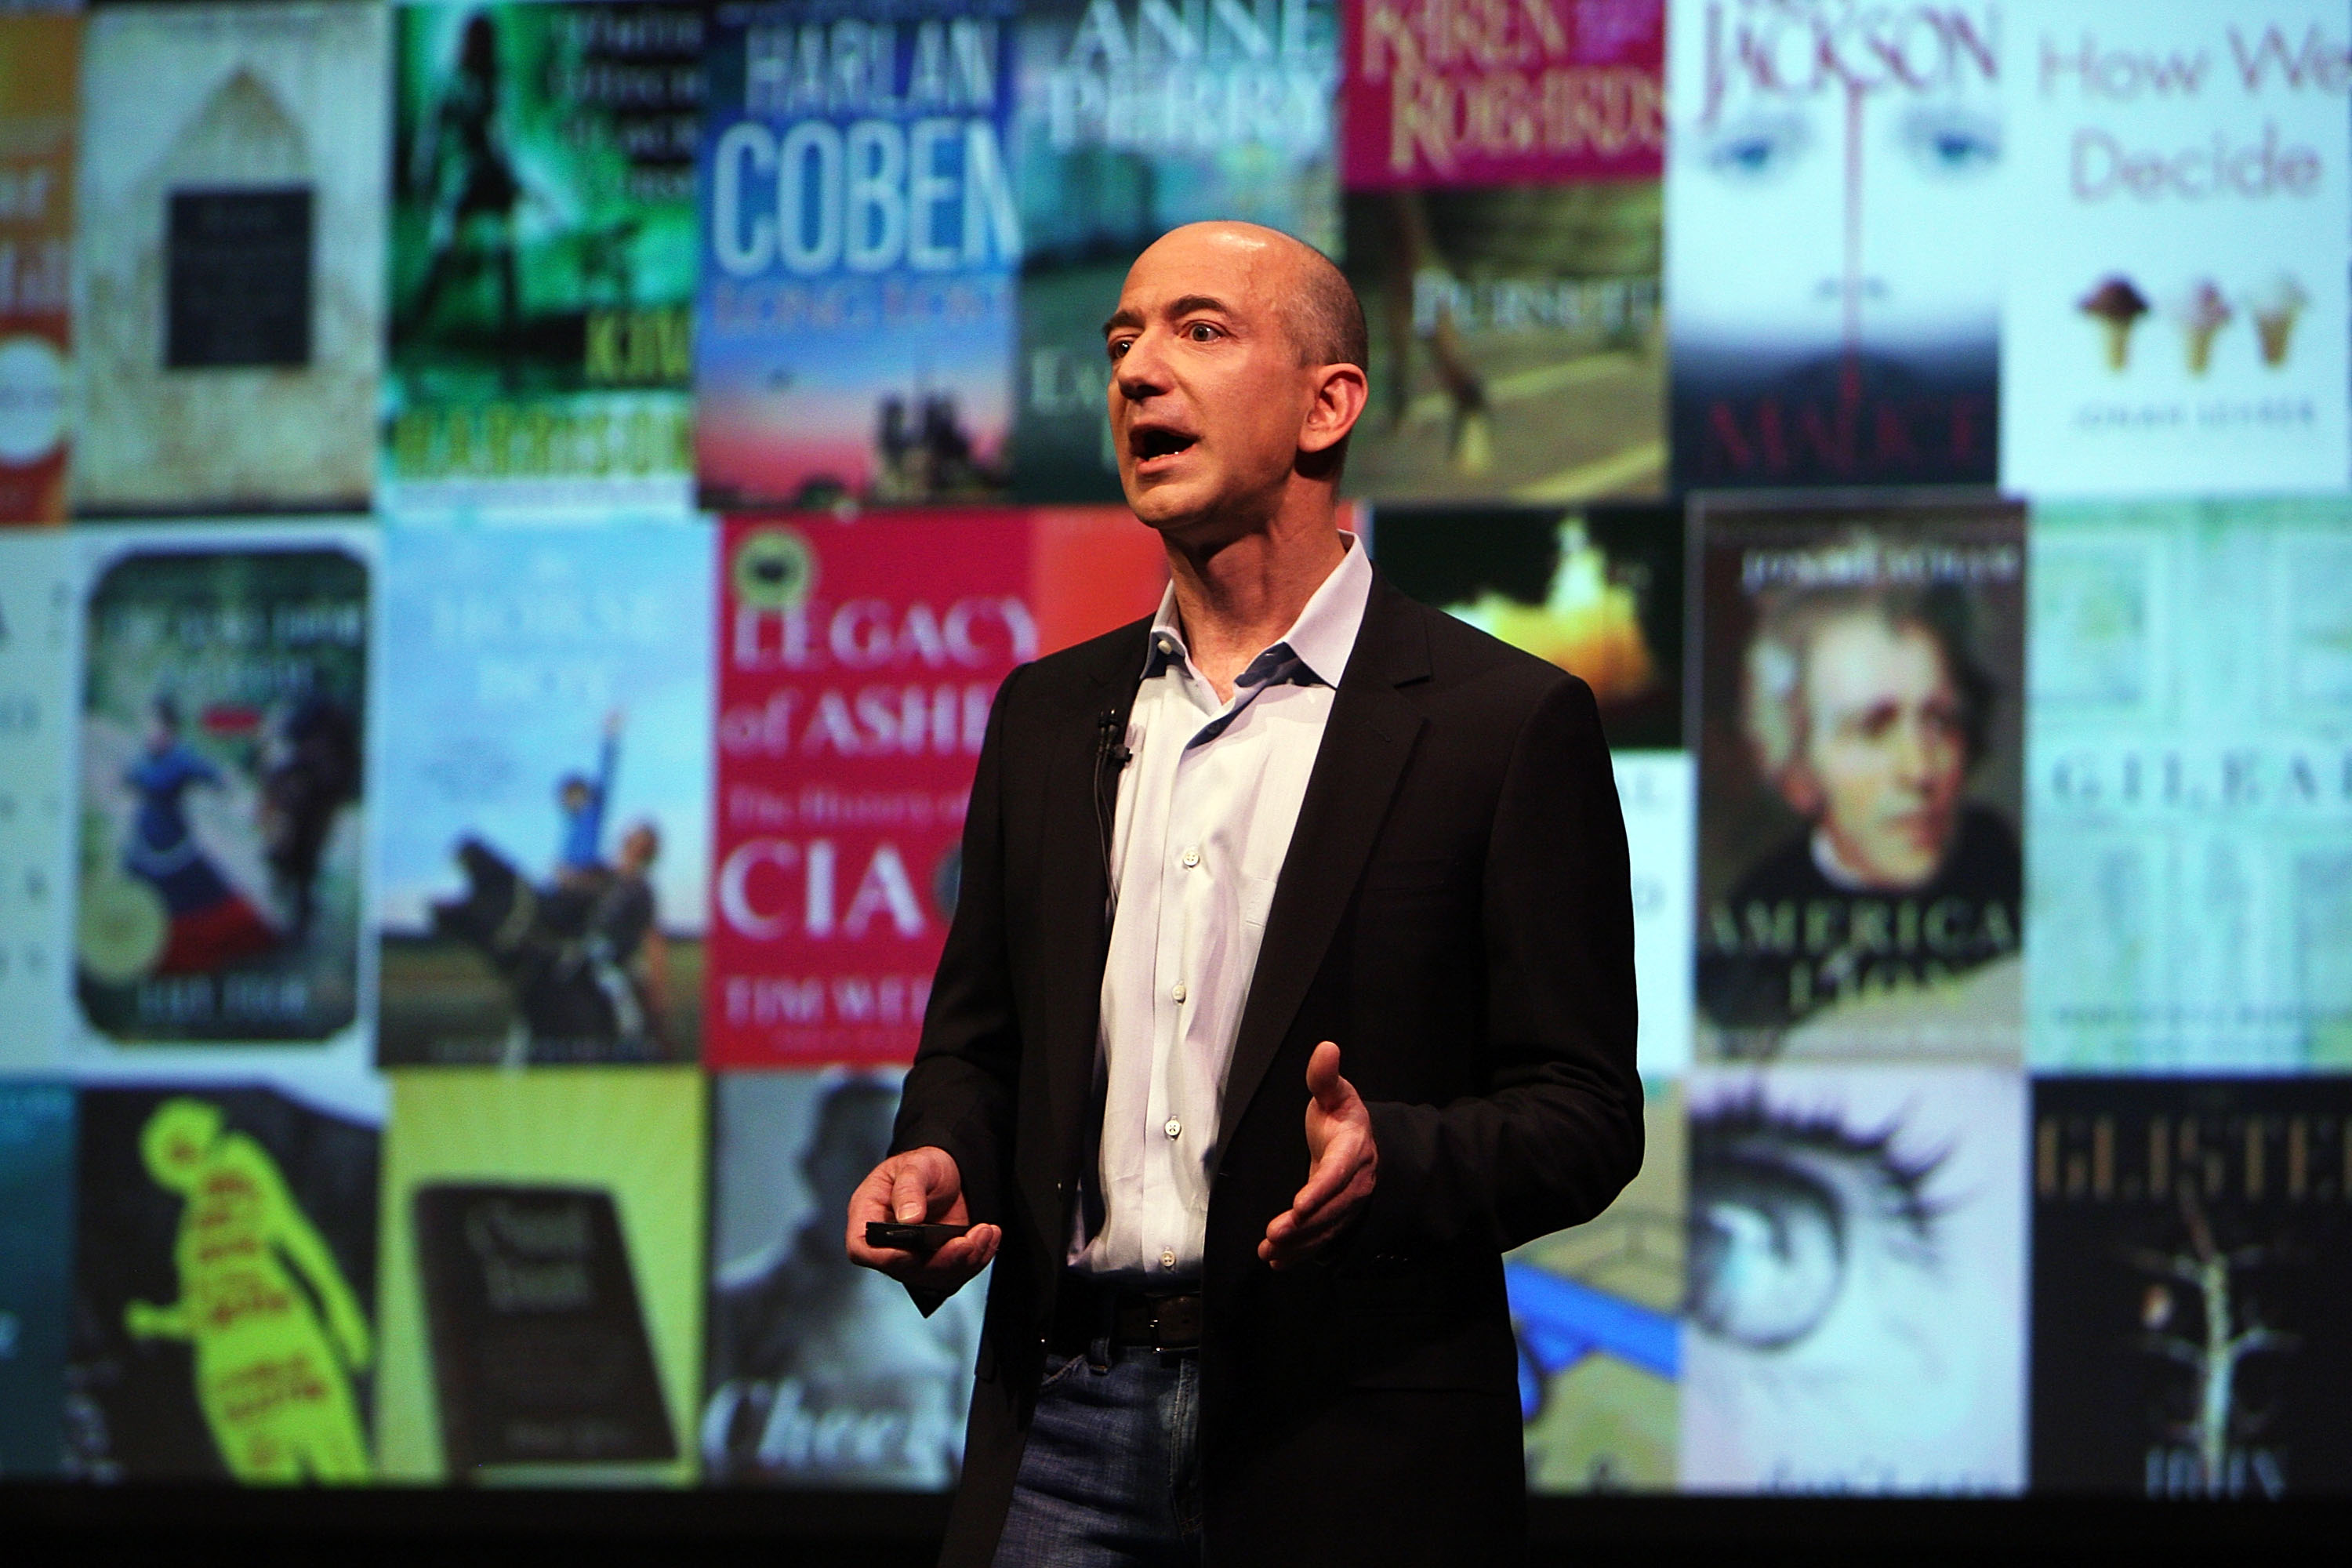 Amazon CEO Jeff Bezos speaks about the new Kindle DX at a press conference at Pace University May 6, 2009 in New York City.